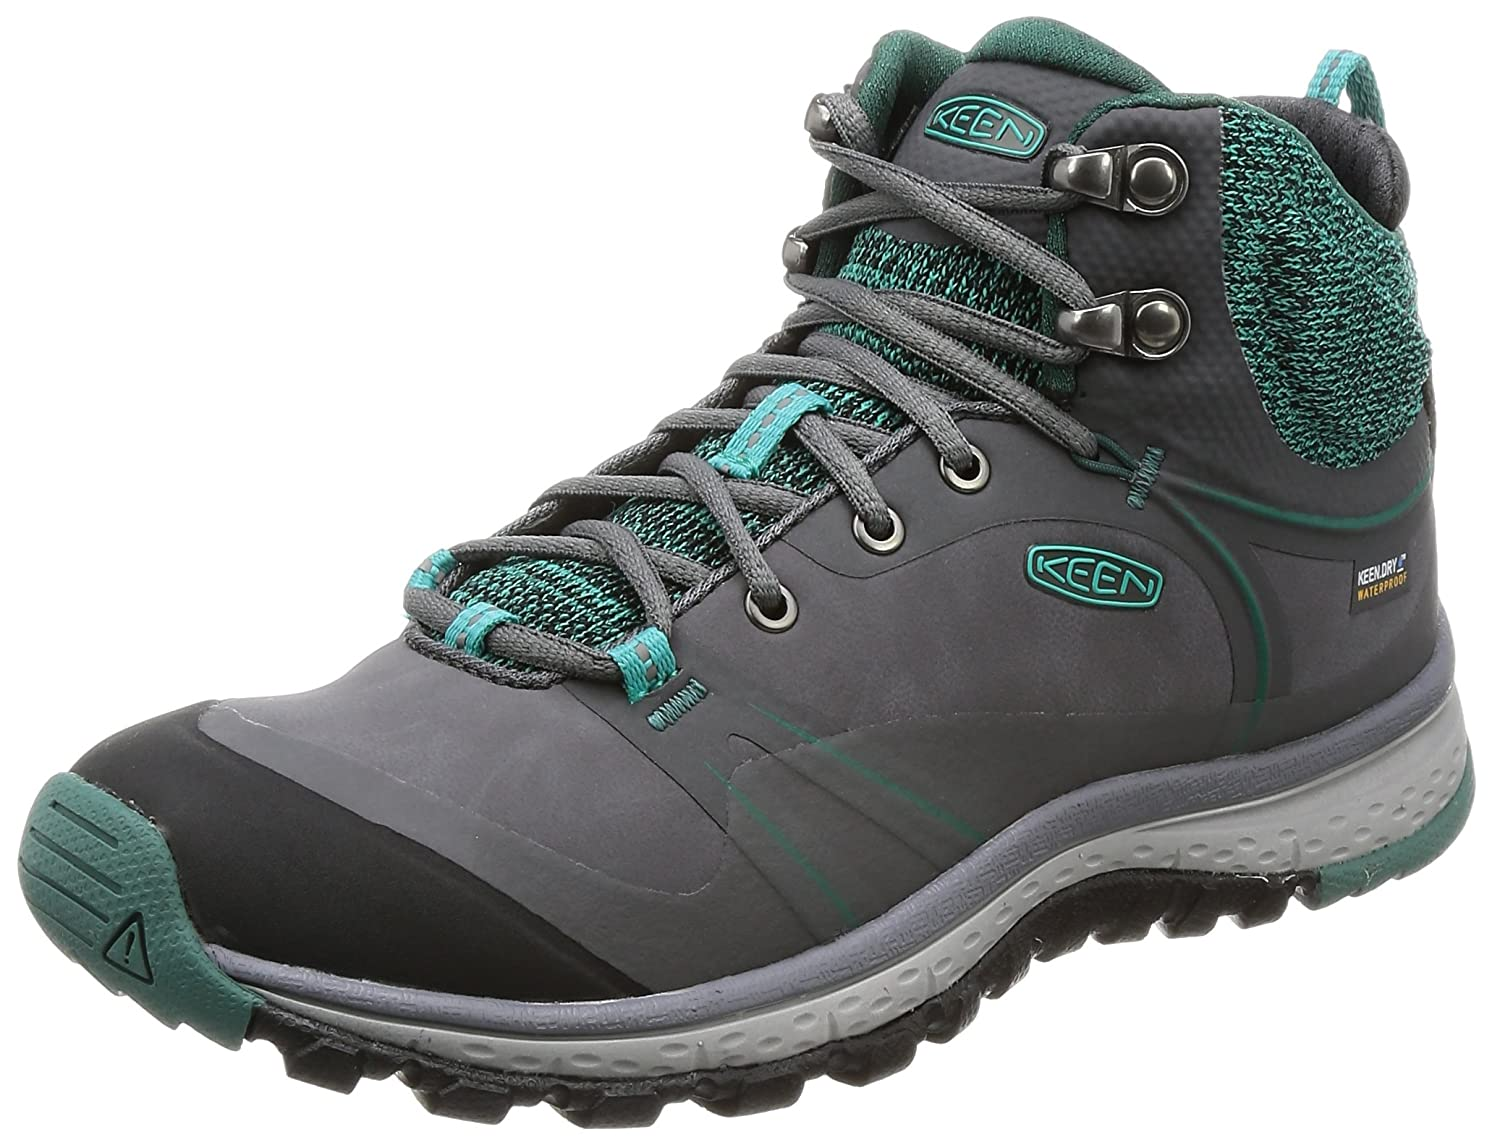 KEEN Women's Terradora Pulse Mid WP-W Hiking Boot B01N53V1W1 9.5 B(M) US|Magnet/Baltic